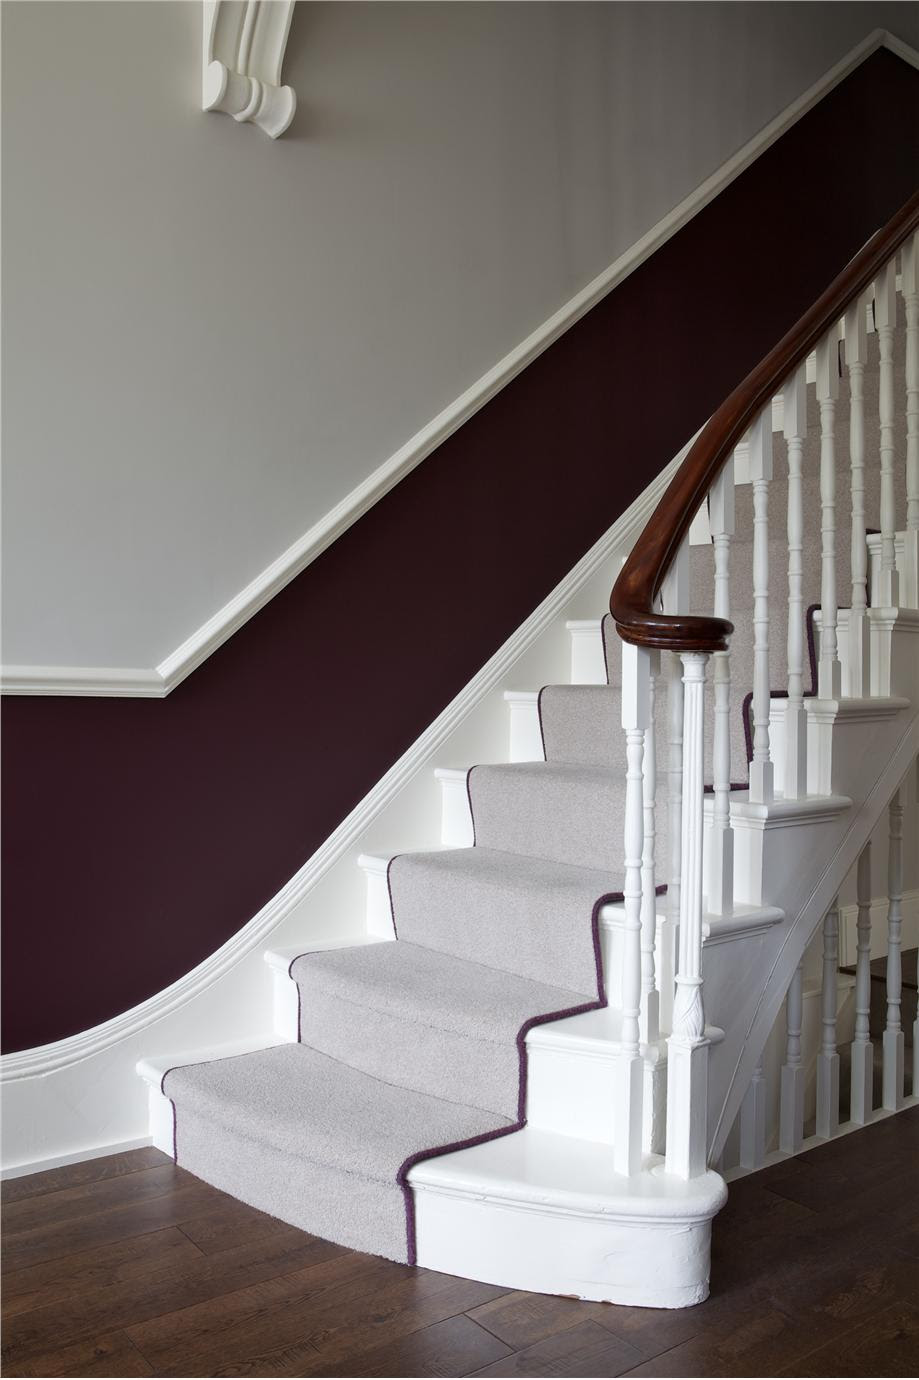 Farrow and Ball Brinjal and Farrow and Ball Cornforth White in small hallway